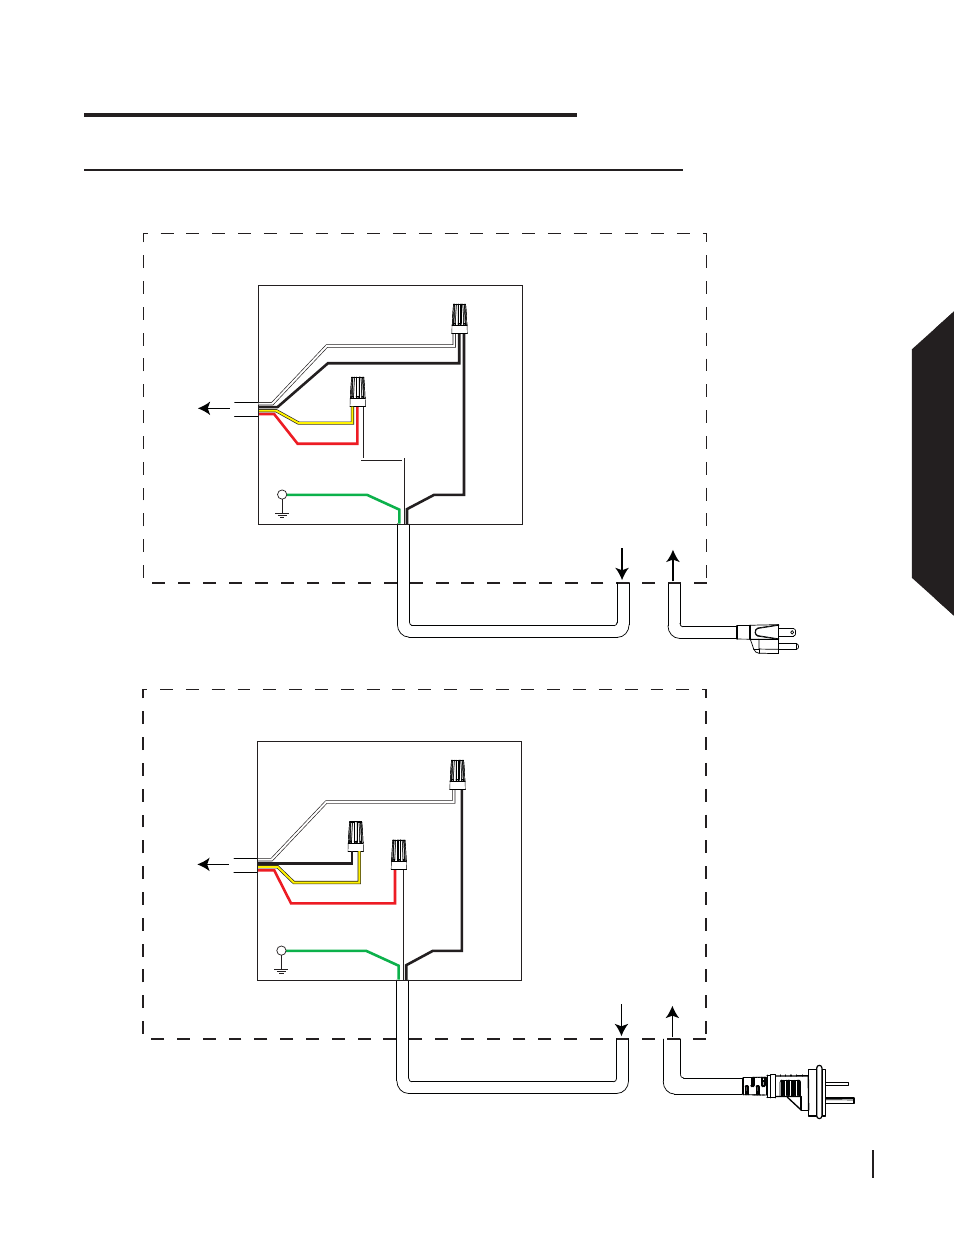 [DIAGRAM_1JK]  30646D Delta Rockwell Table Saw Motor Wiring Diagram | Wiring Library | Delta Trailer Wiring Diagram |  | Wiring Library